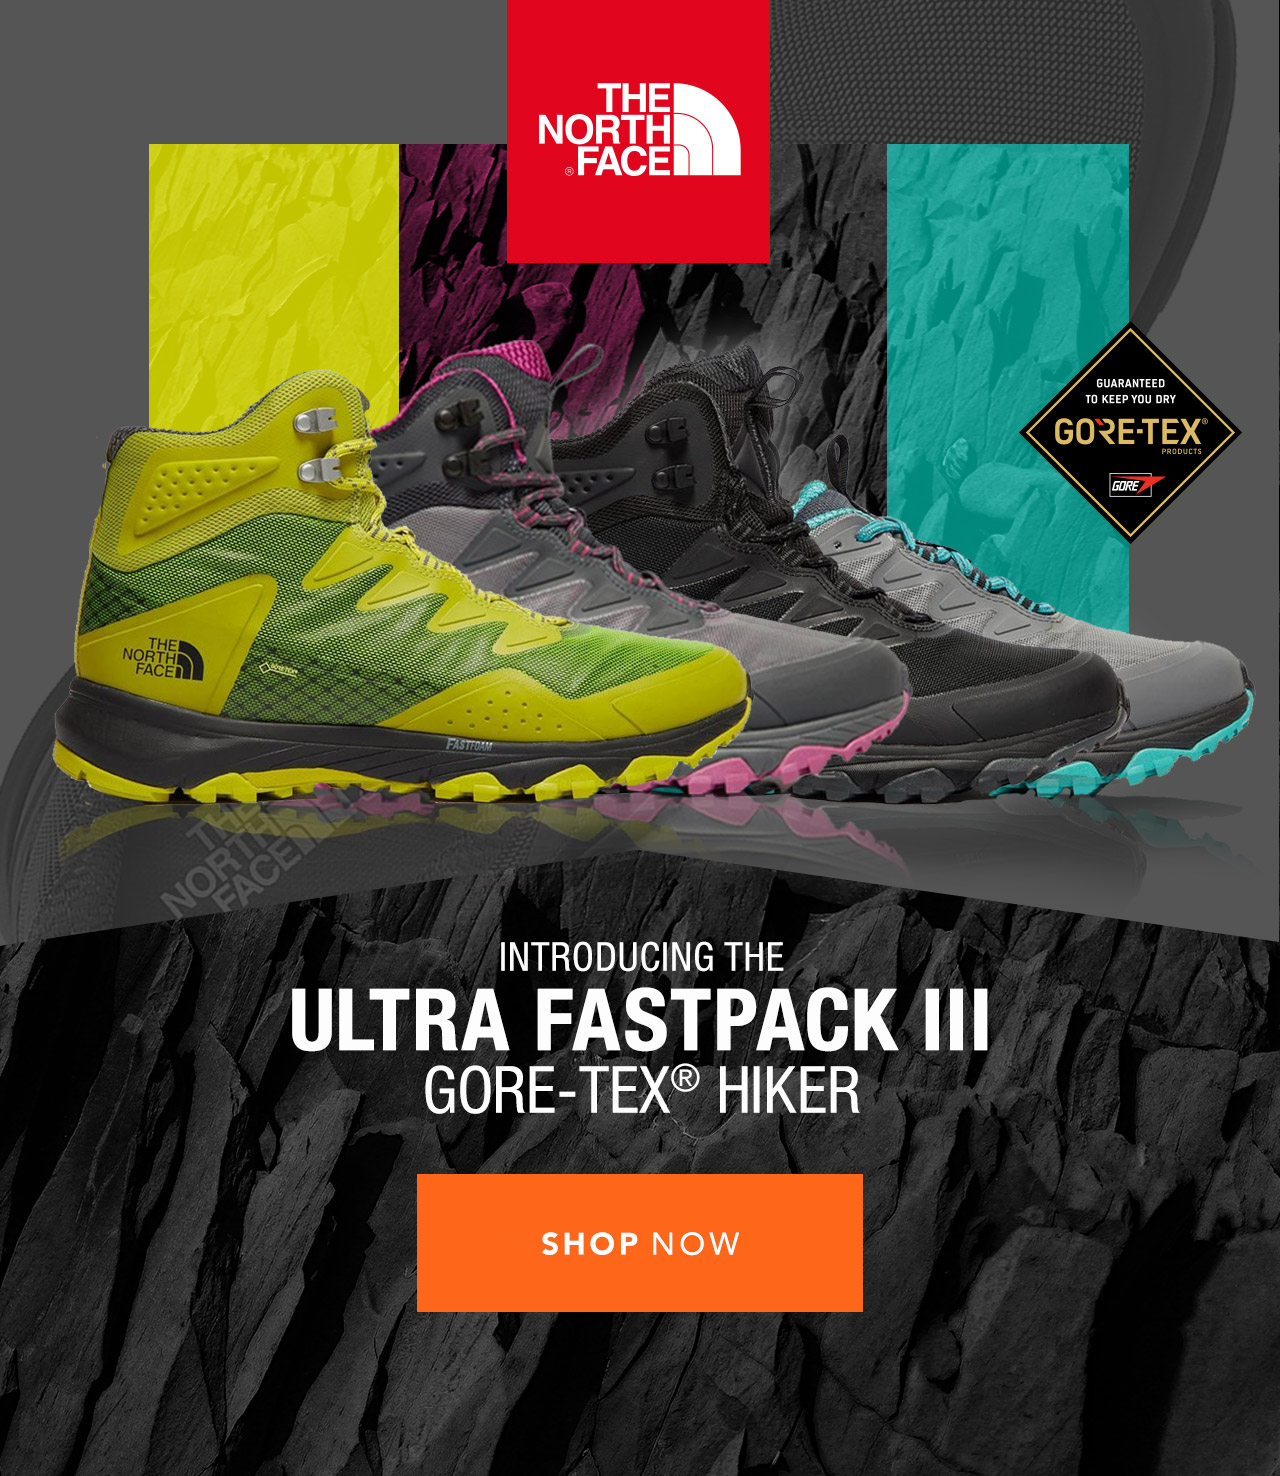 The North Face Fastpack III